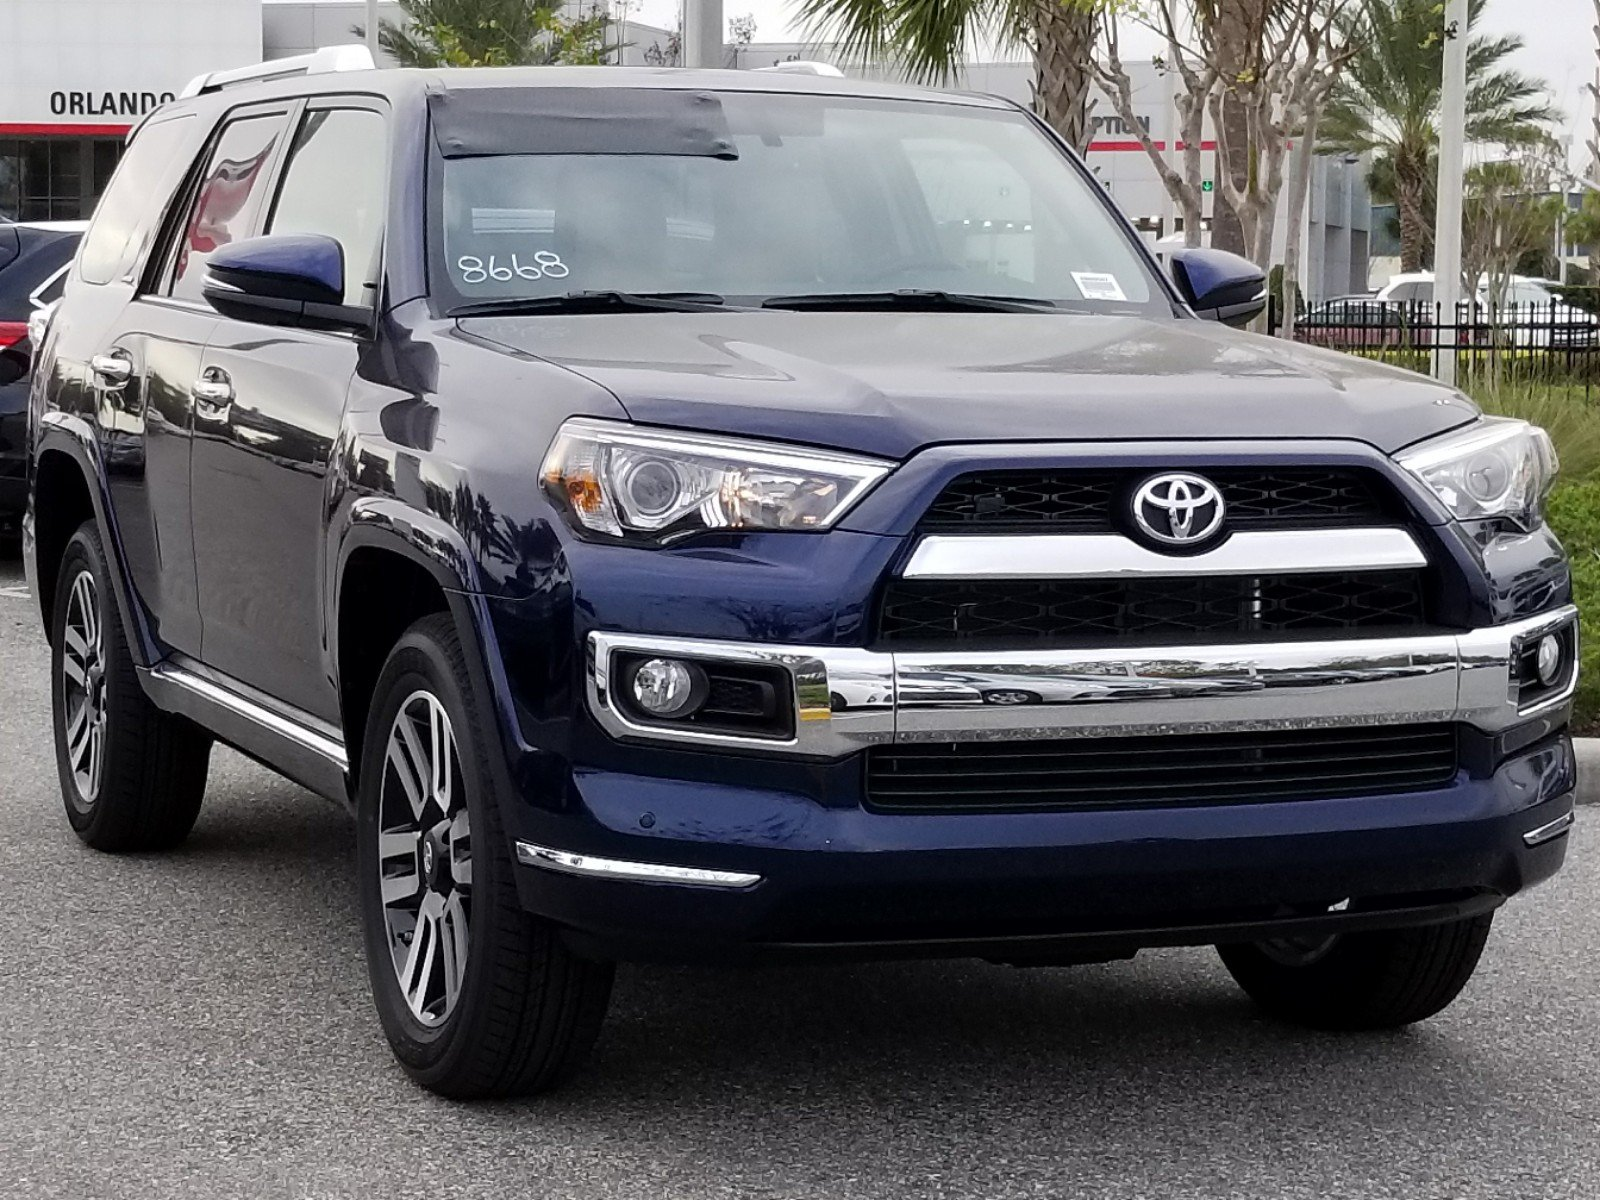 dce93a16ba348157cbf6f96dff1f2705 Great Description About Used toyota 4runner for Sale